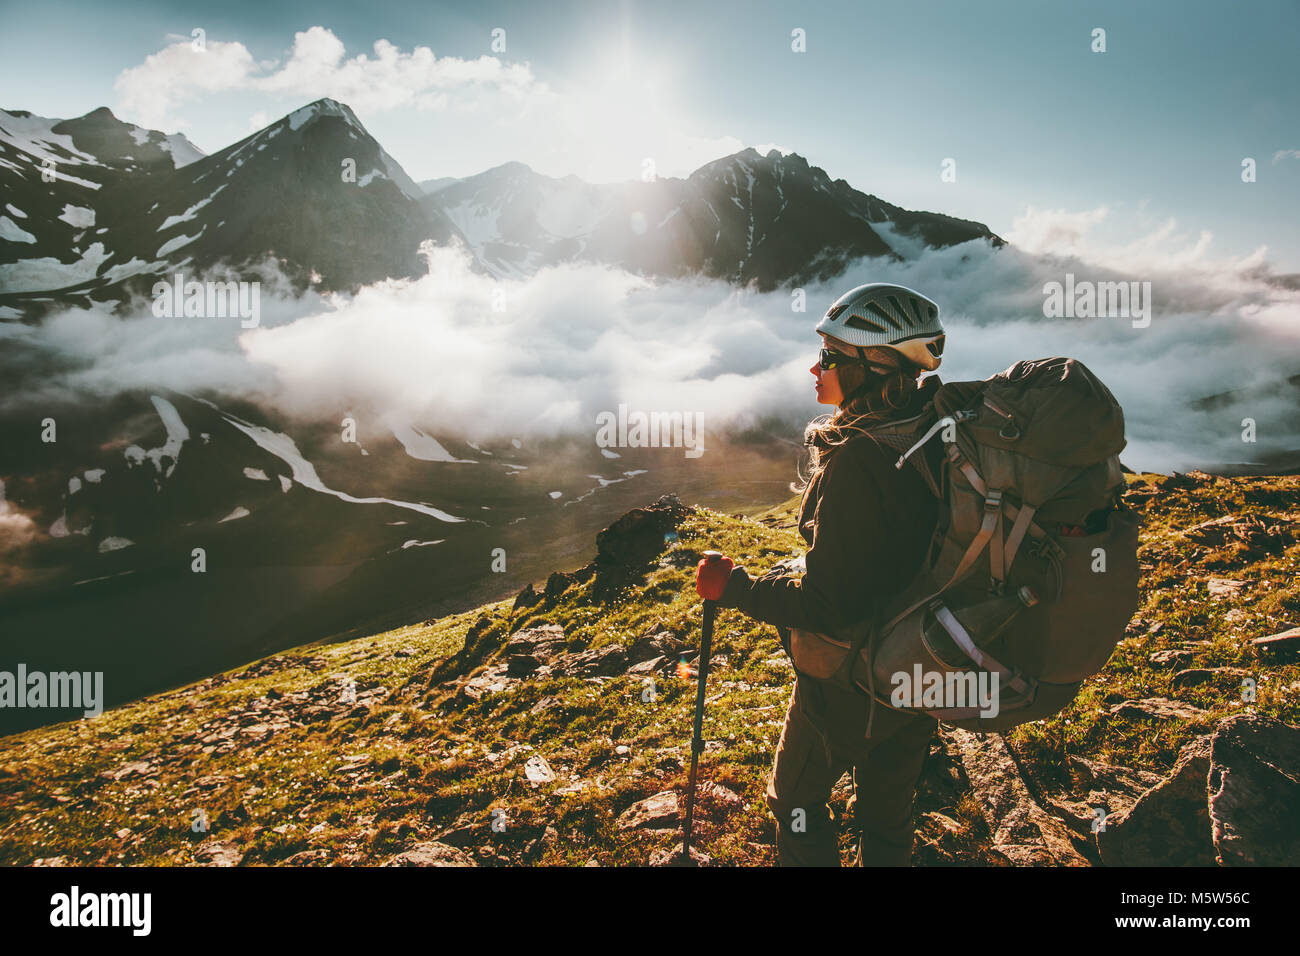 Backpacker woman enjoying mountains clouds landscape Travel lifestyle adventure concept active summer vacations - Stock Image